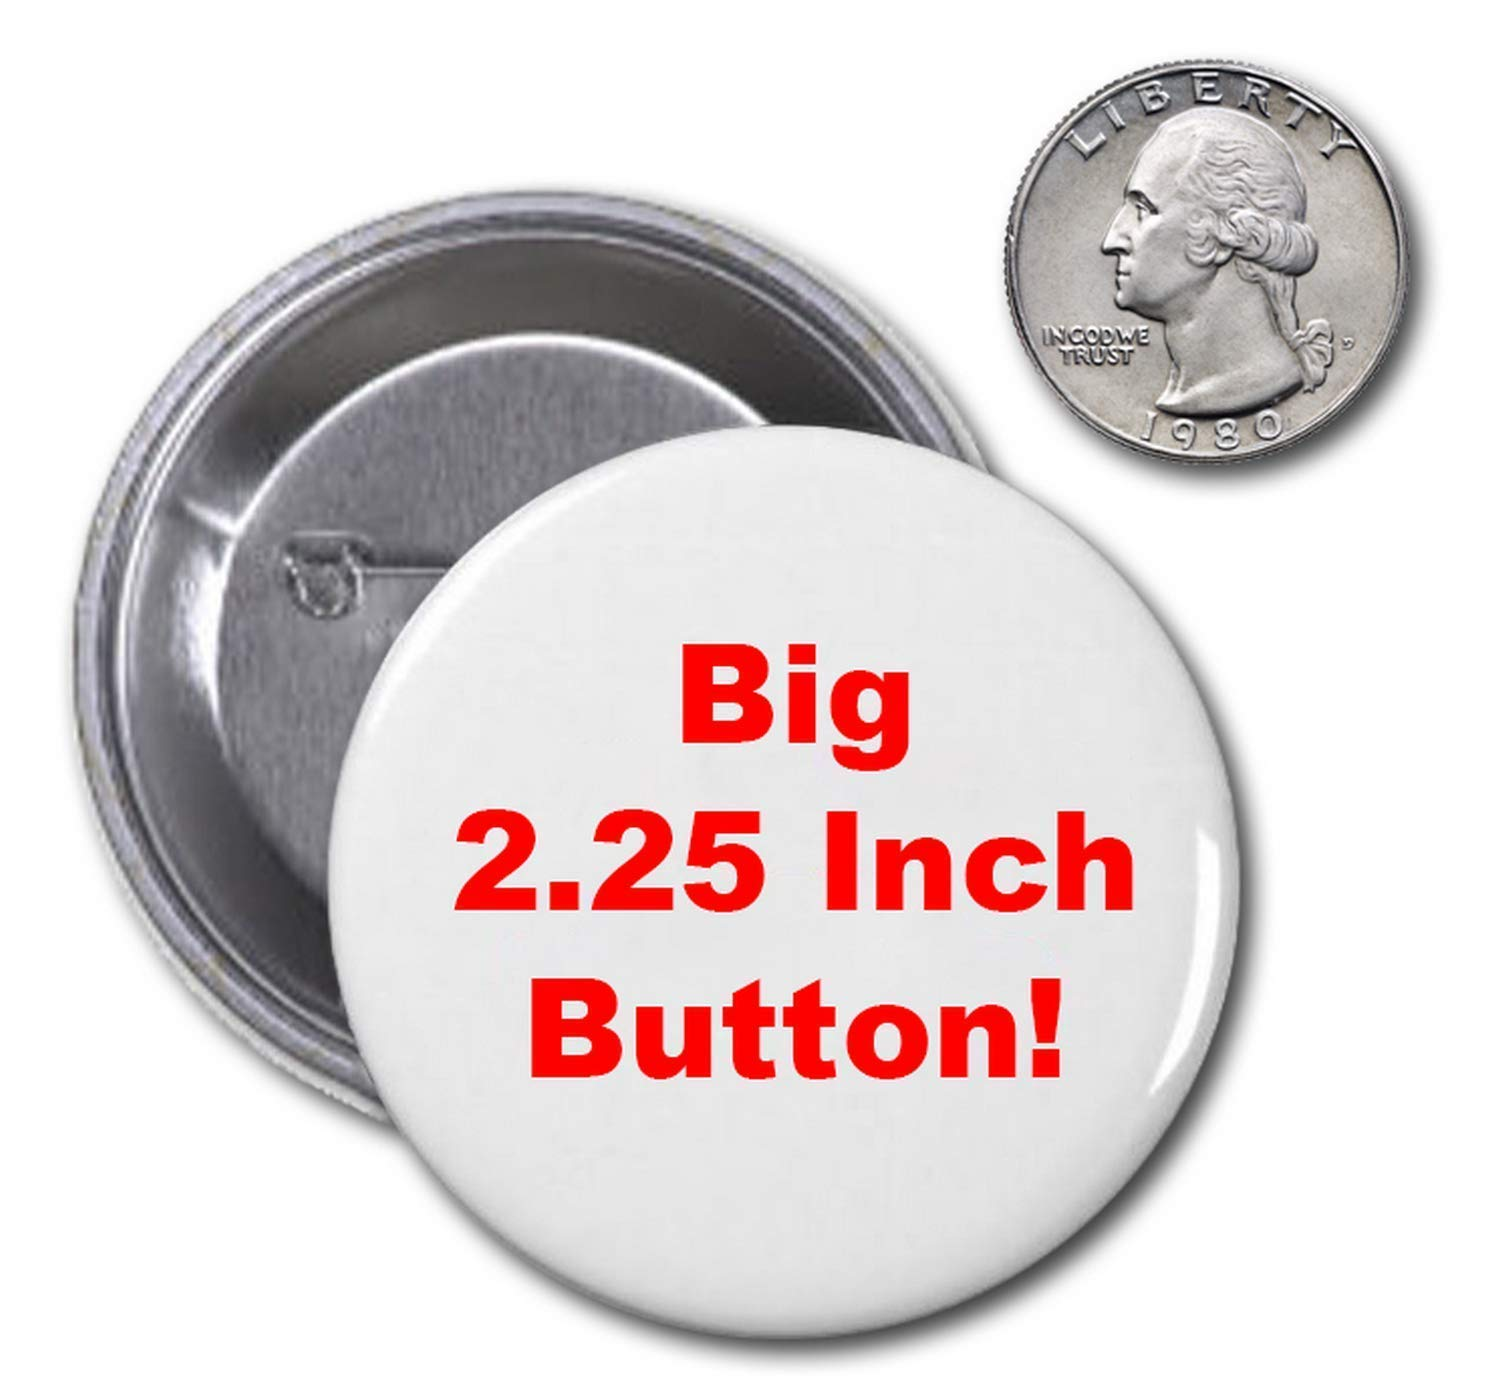 Cute Cuddly Gerbils for Trump 2020 6-Button Rally Pack 2.25 Inch Big Funny Pins Hamster Badges